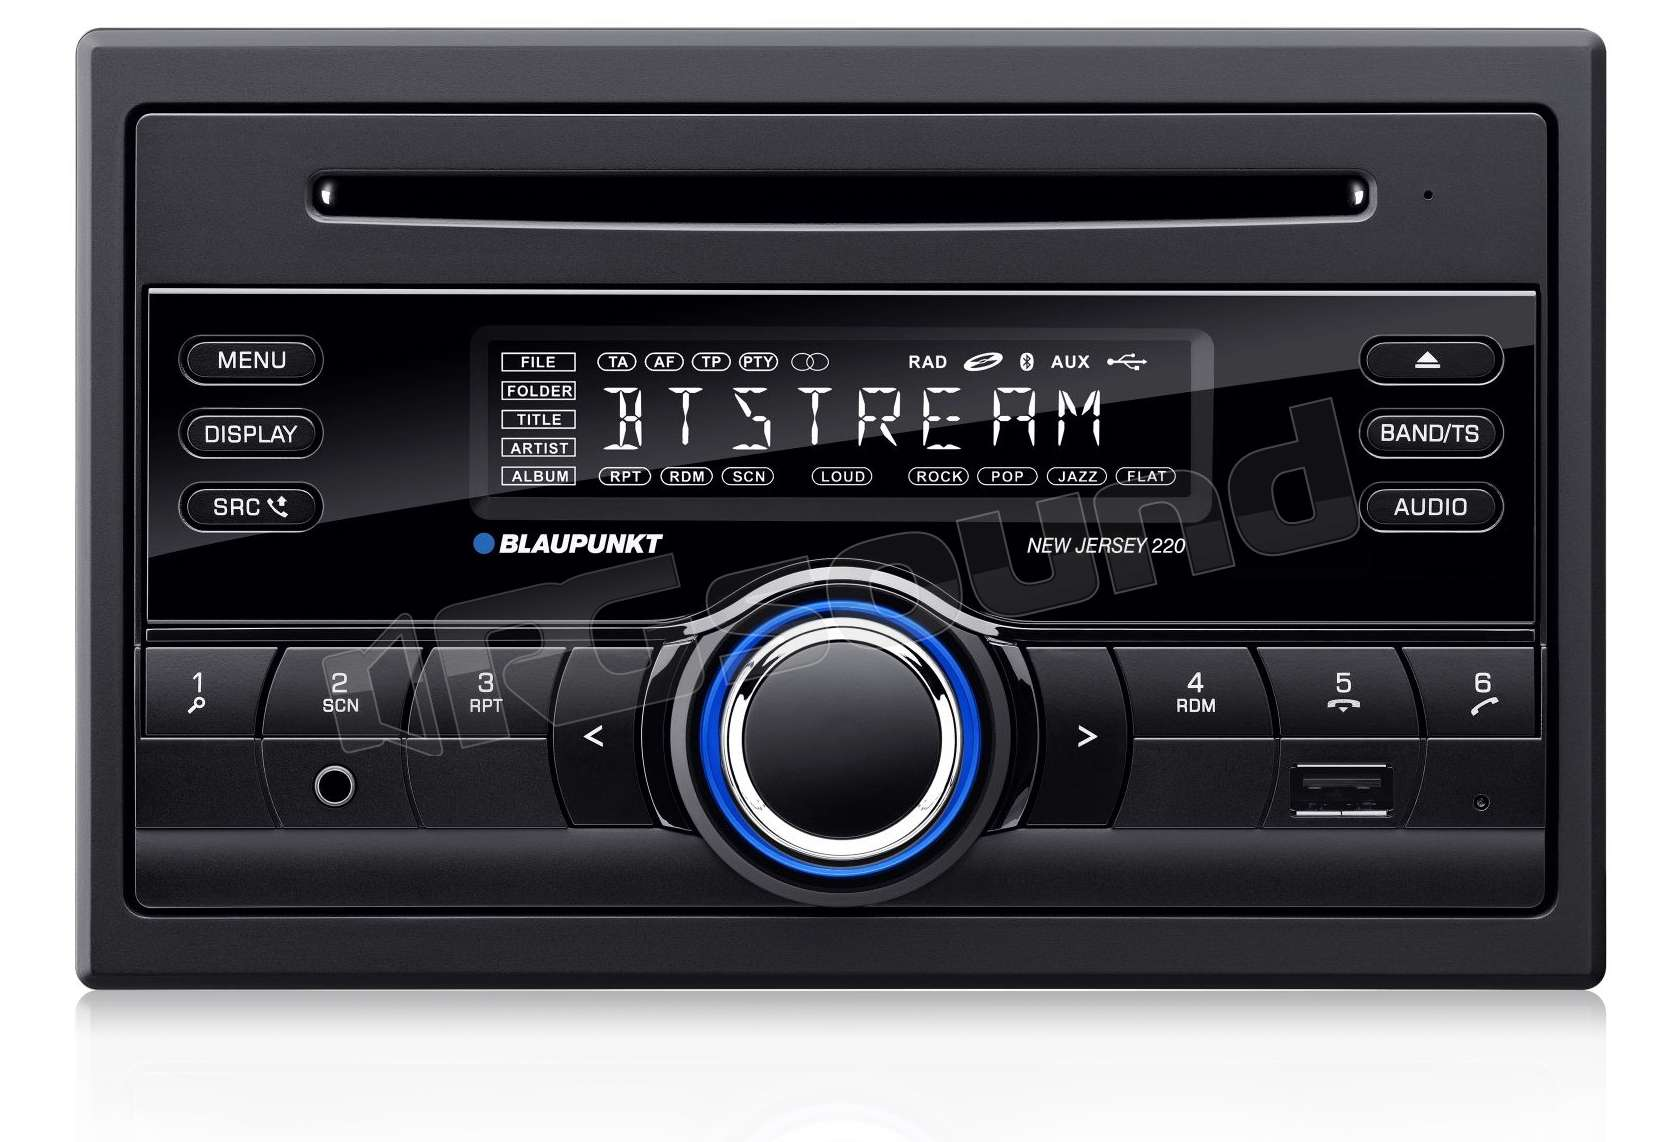 blaupunkt new jersey 220 bt sintolettore 2 din con cd. Black Bedroom Furniture Sets. Home Design Ideas